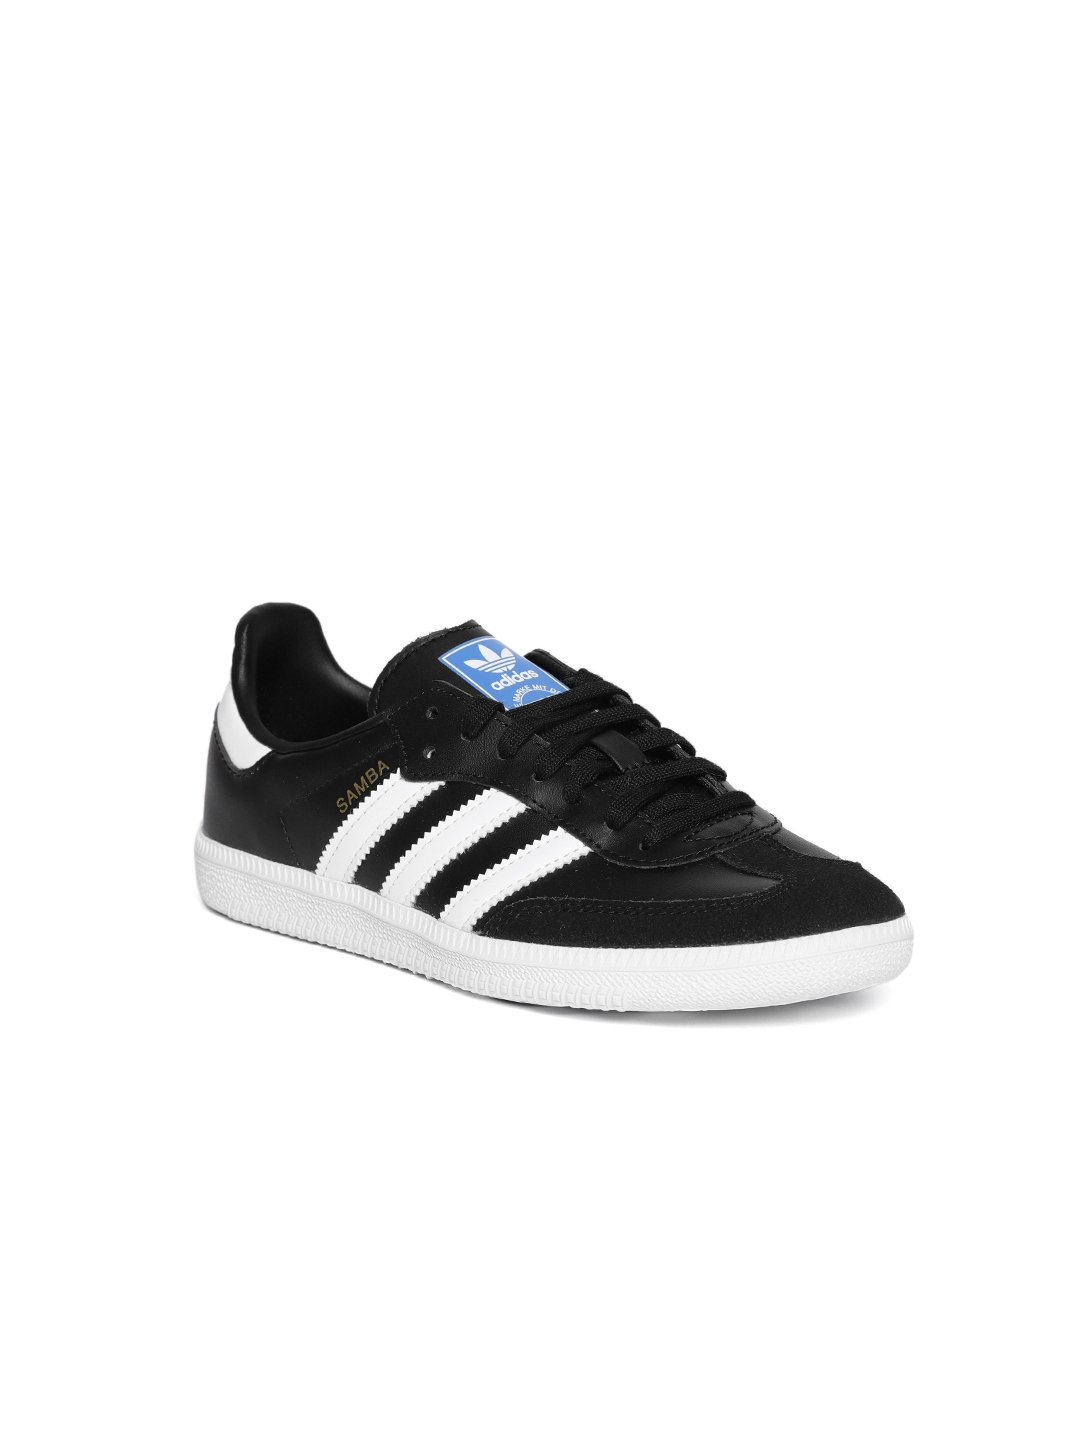 Buy Adidas Originals Kids Black Samba OG J Leather Sneakers - Casual ... ff1ae4afd0